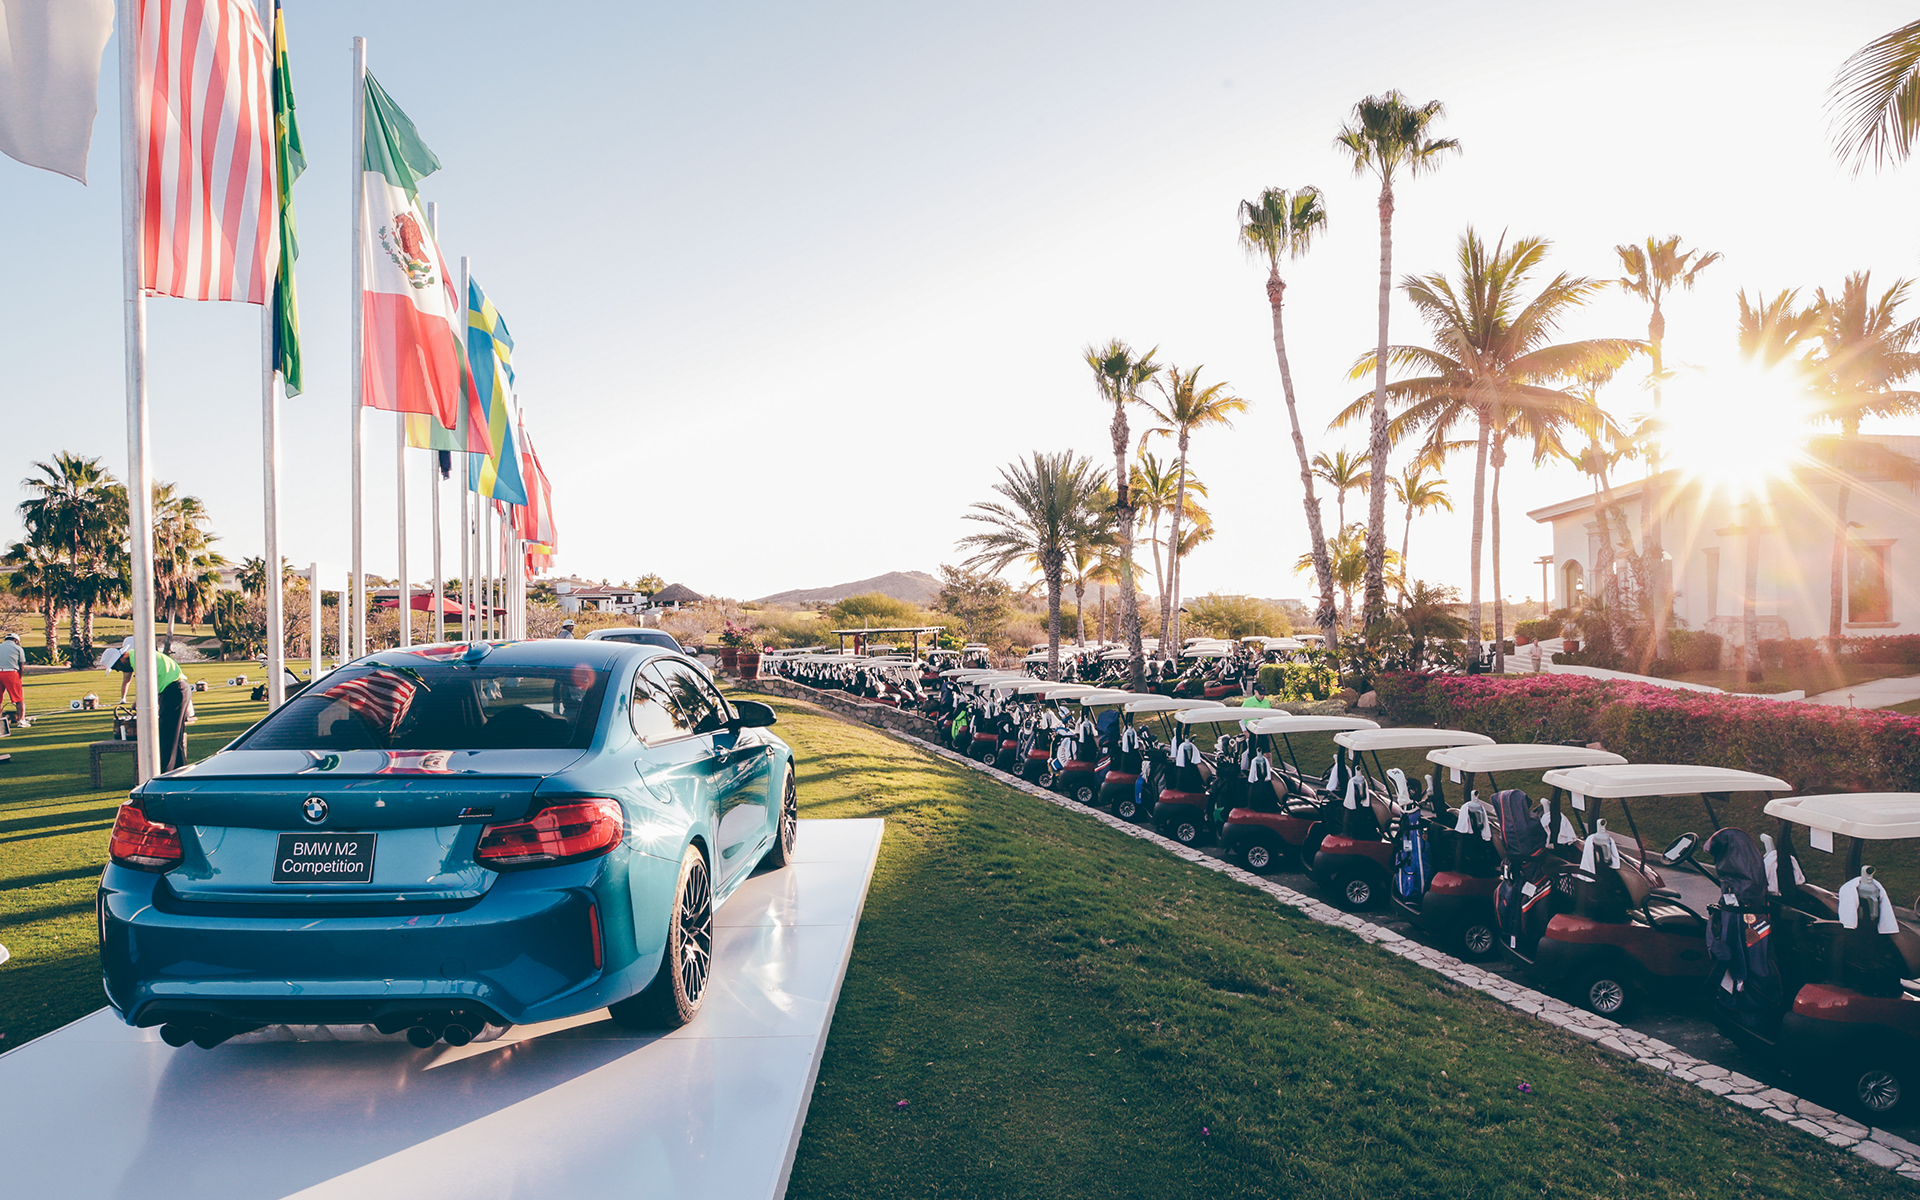 13 All New Bmw Golf Tournament 2020 Exterior